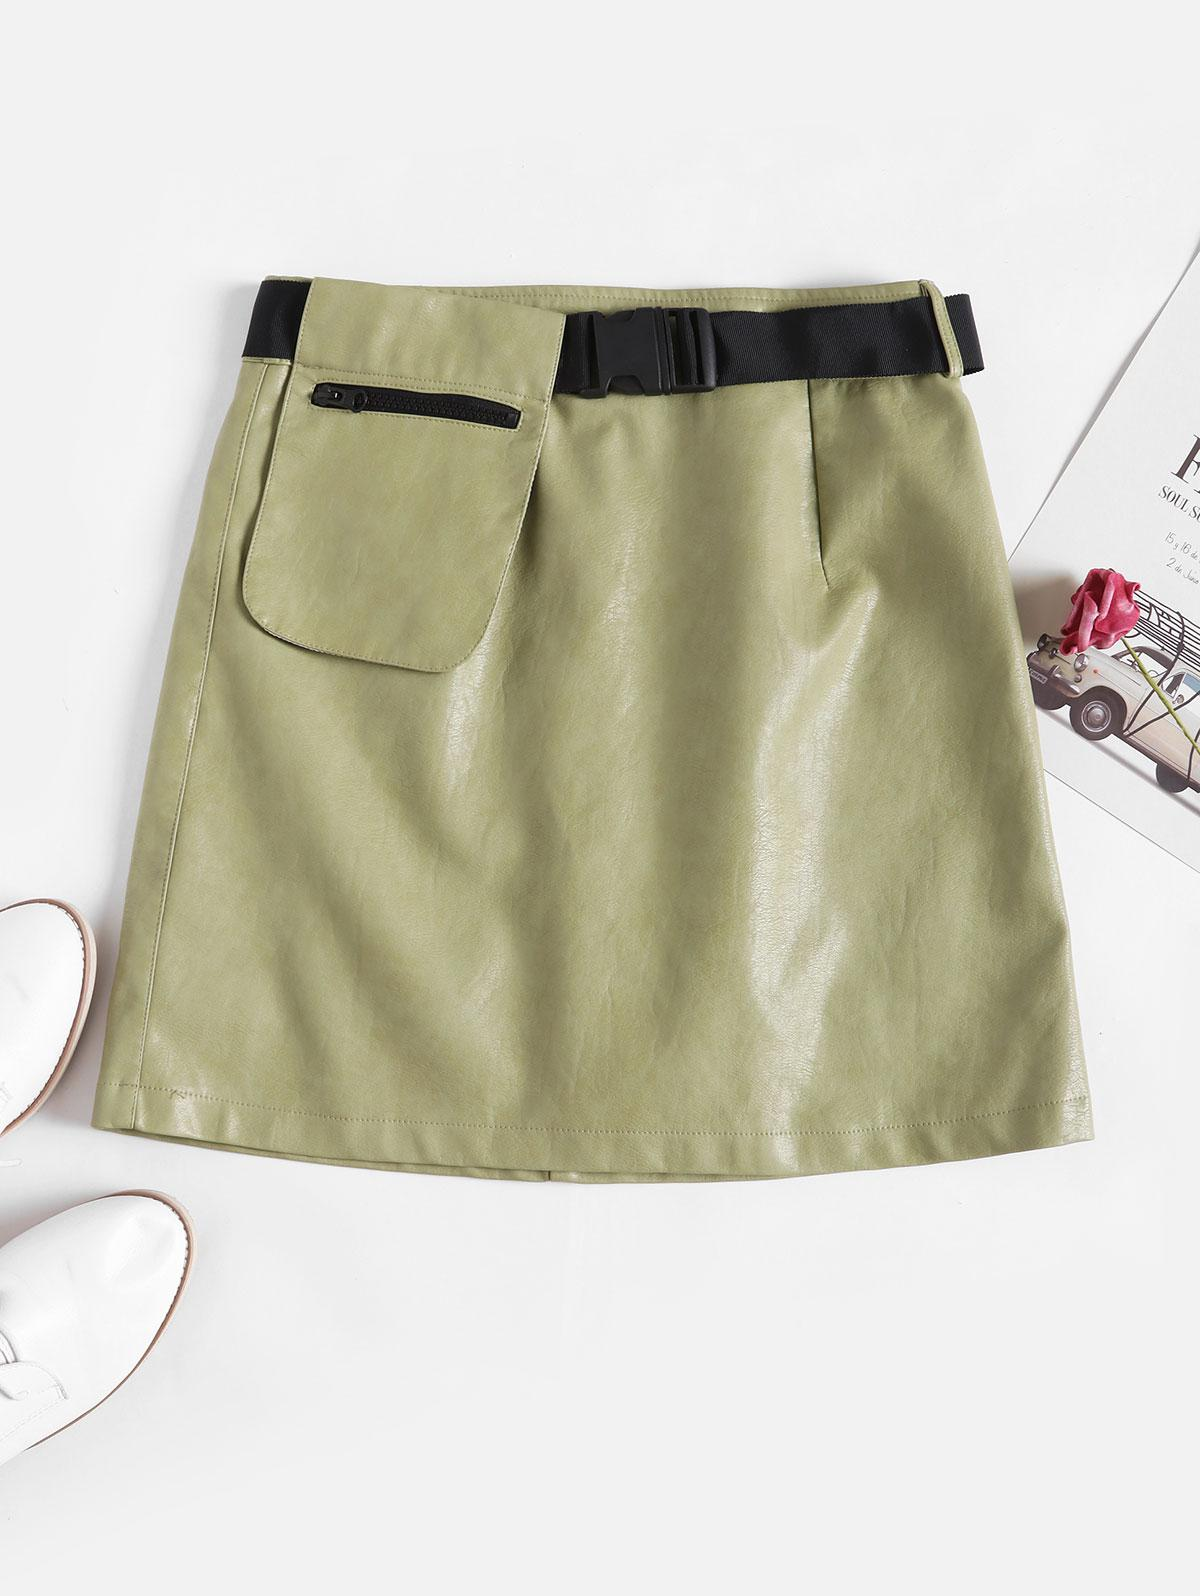 Buckle Belted Zipper Pocket PU Leather Skirt